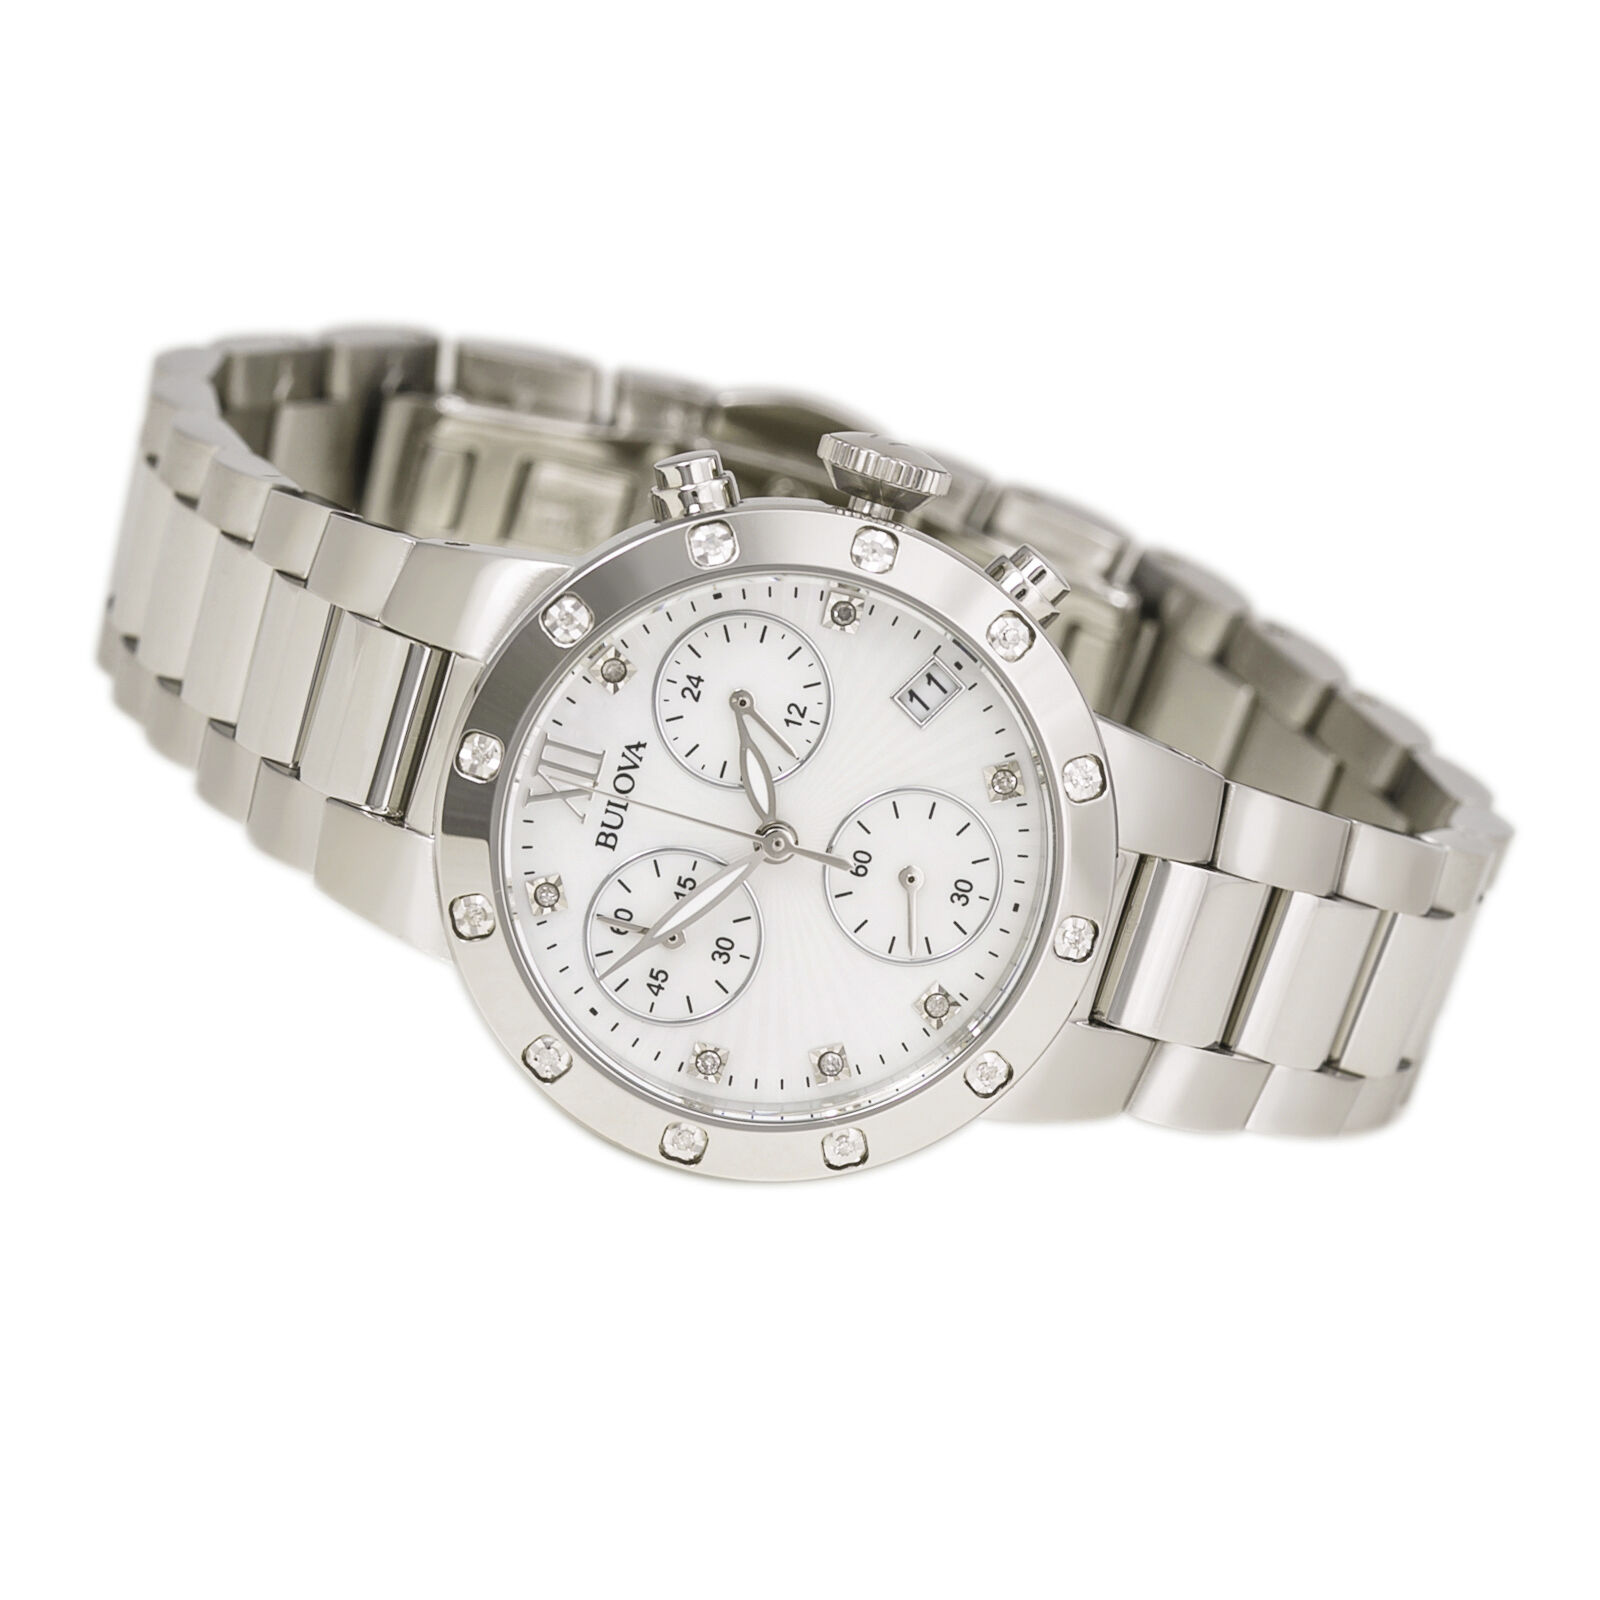 Bulova women 39 s 96r202 diamond chronograph quartz mother of pearl dial watch 7752878451363 ebay for Mother of pearl dial watch